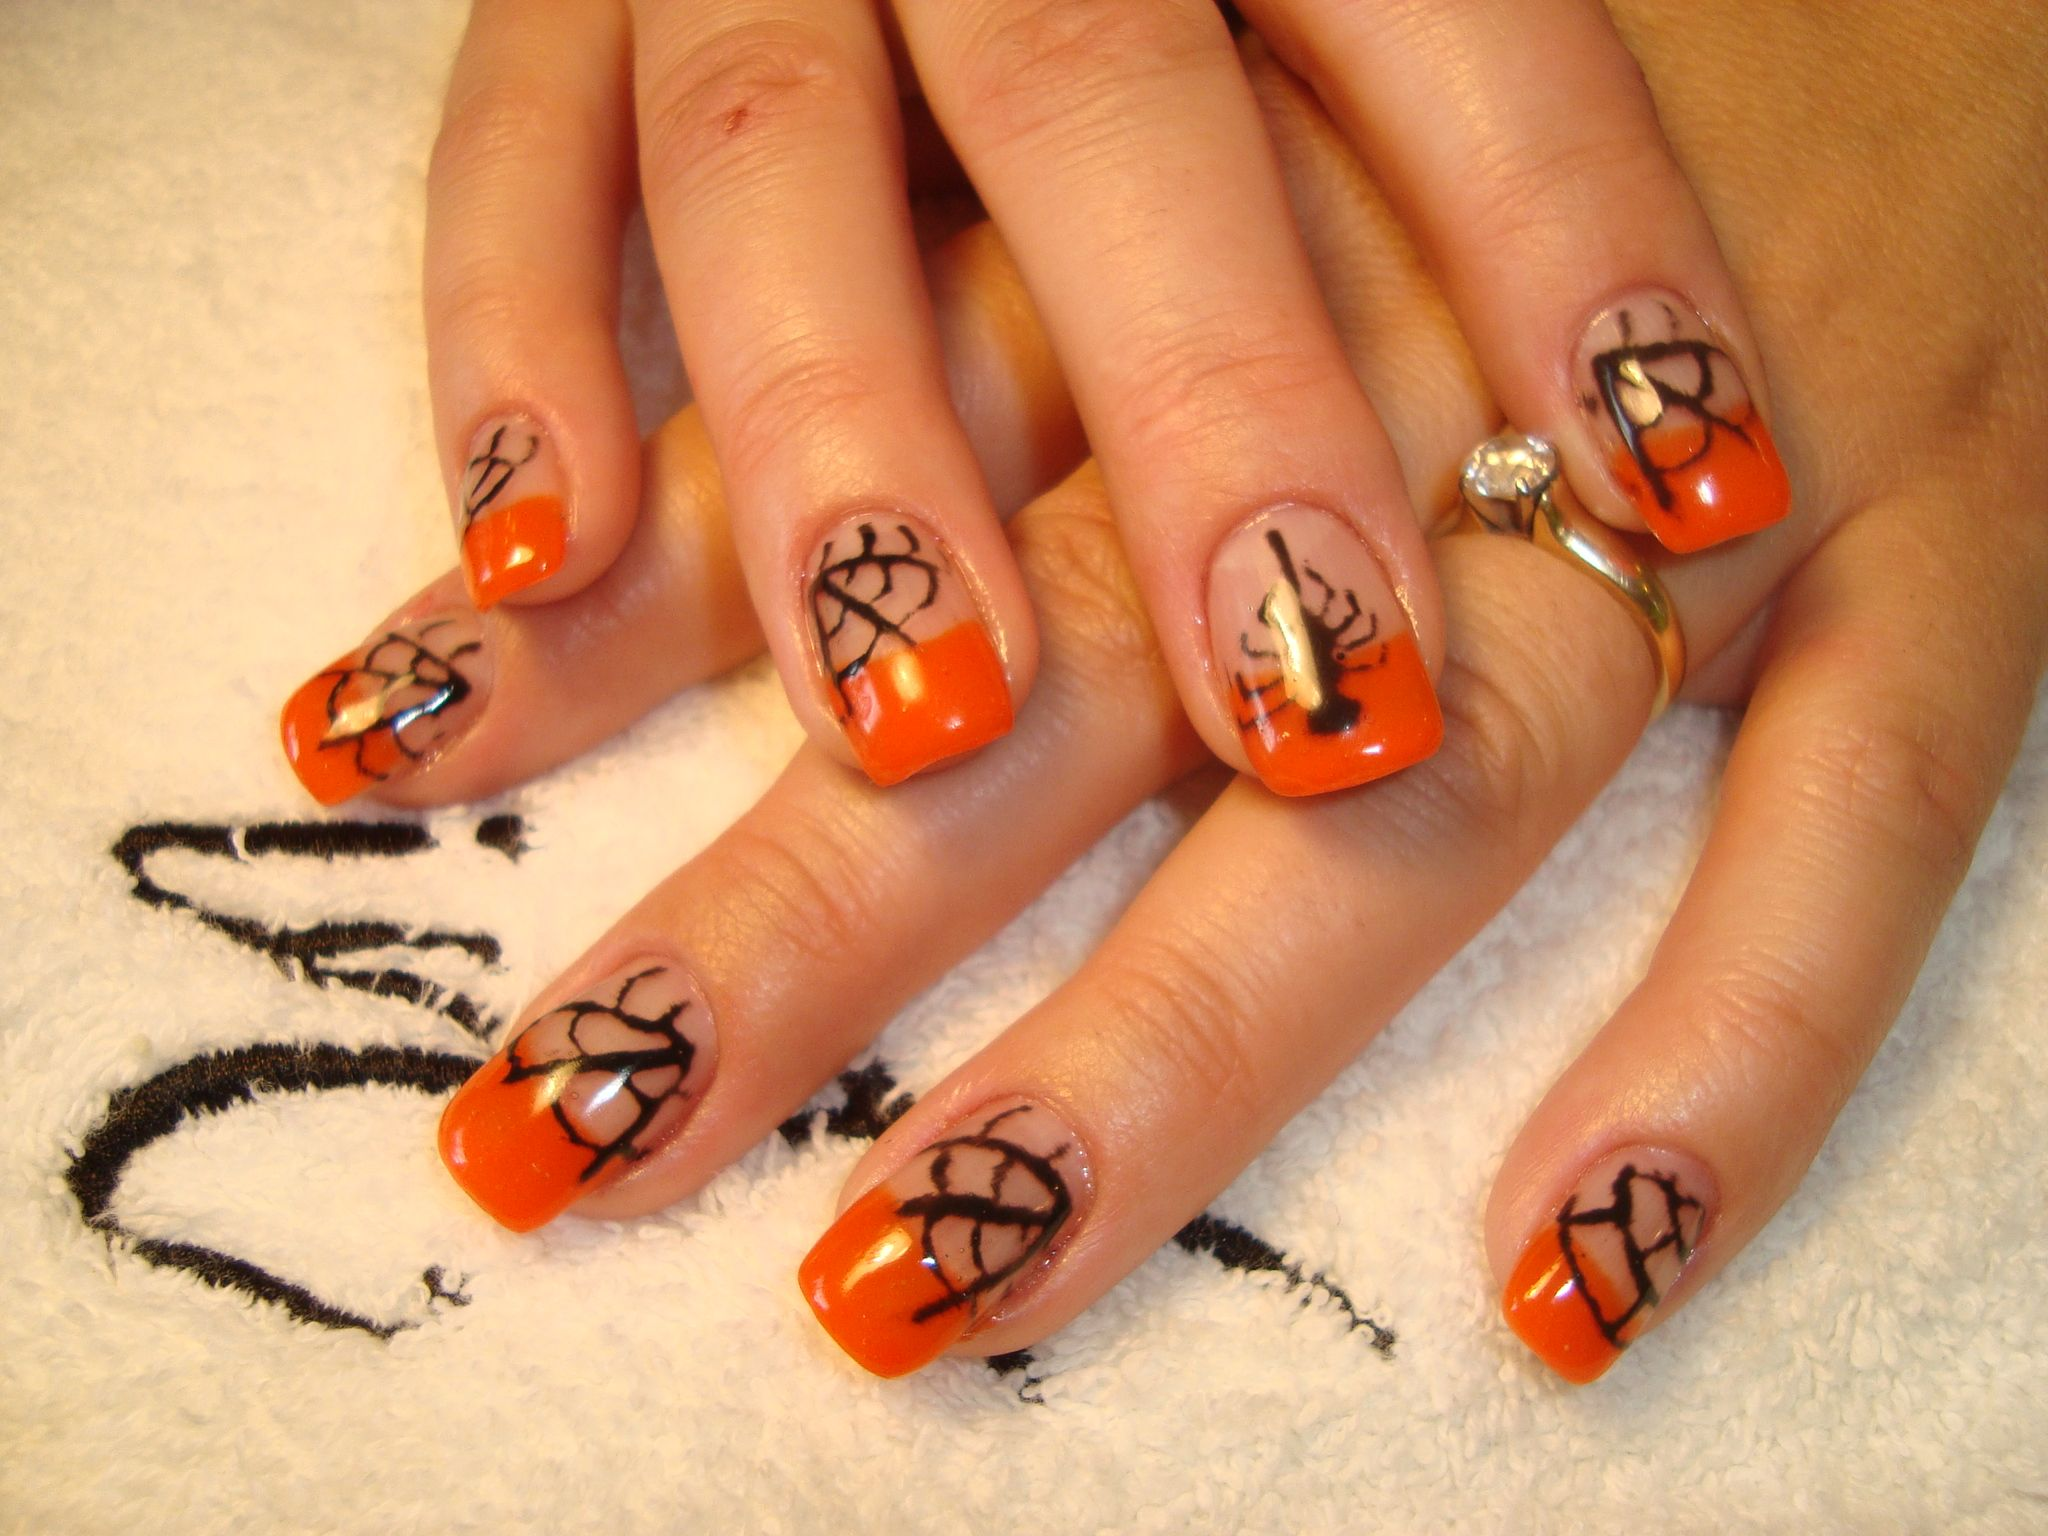 halloween fun | Gel nails, Nails, Halloween fun